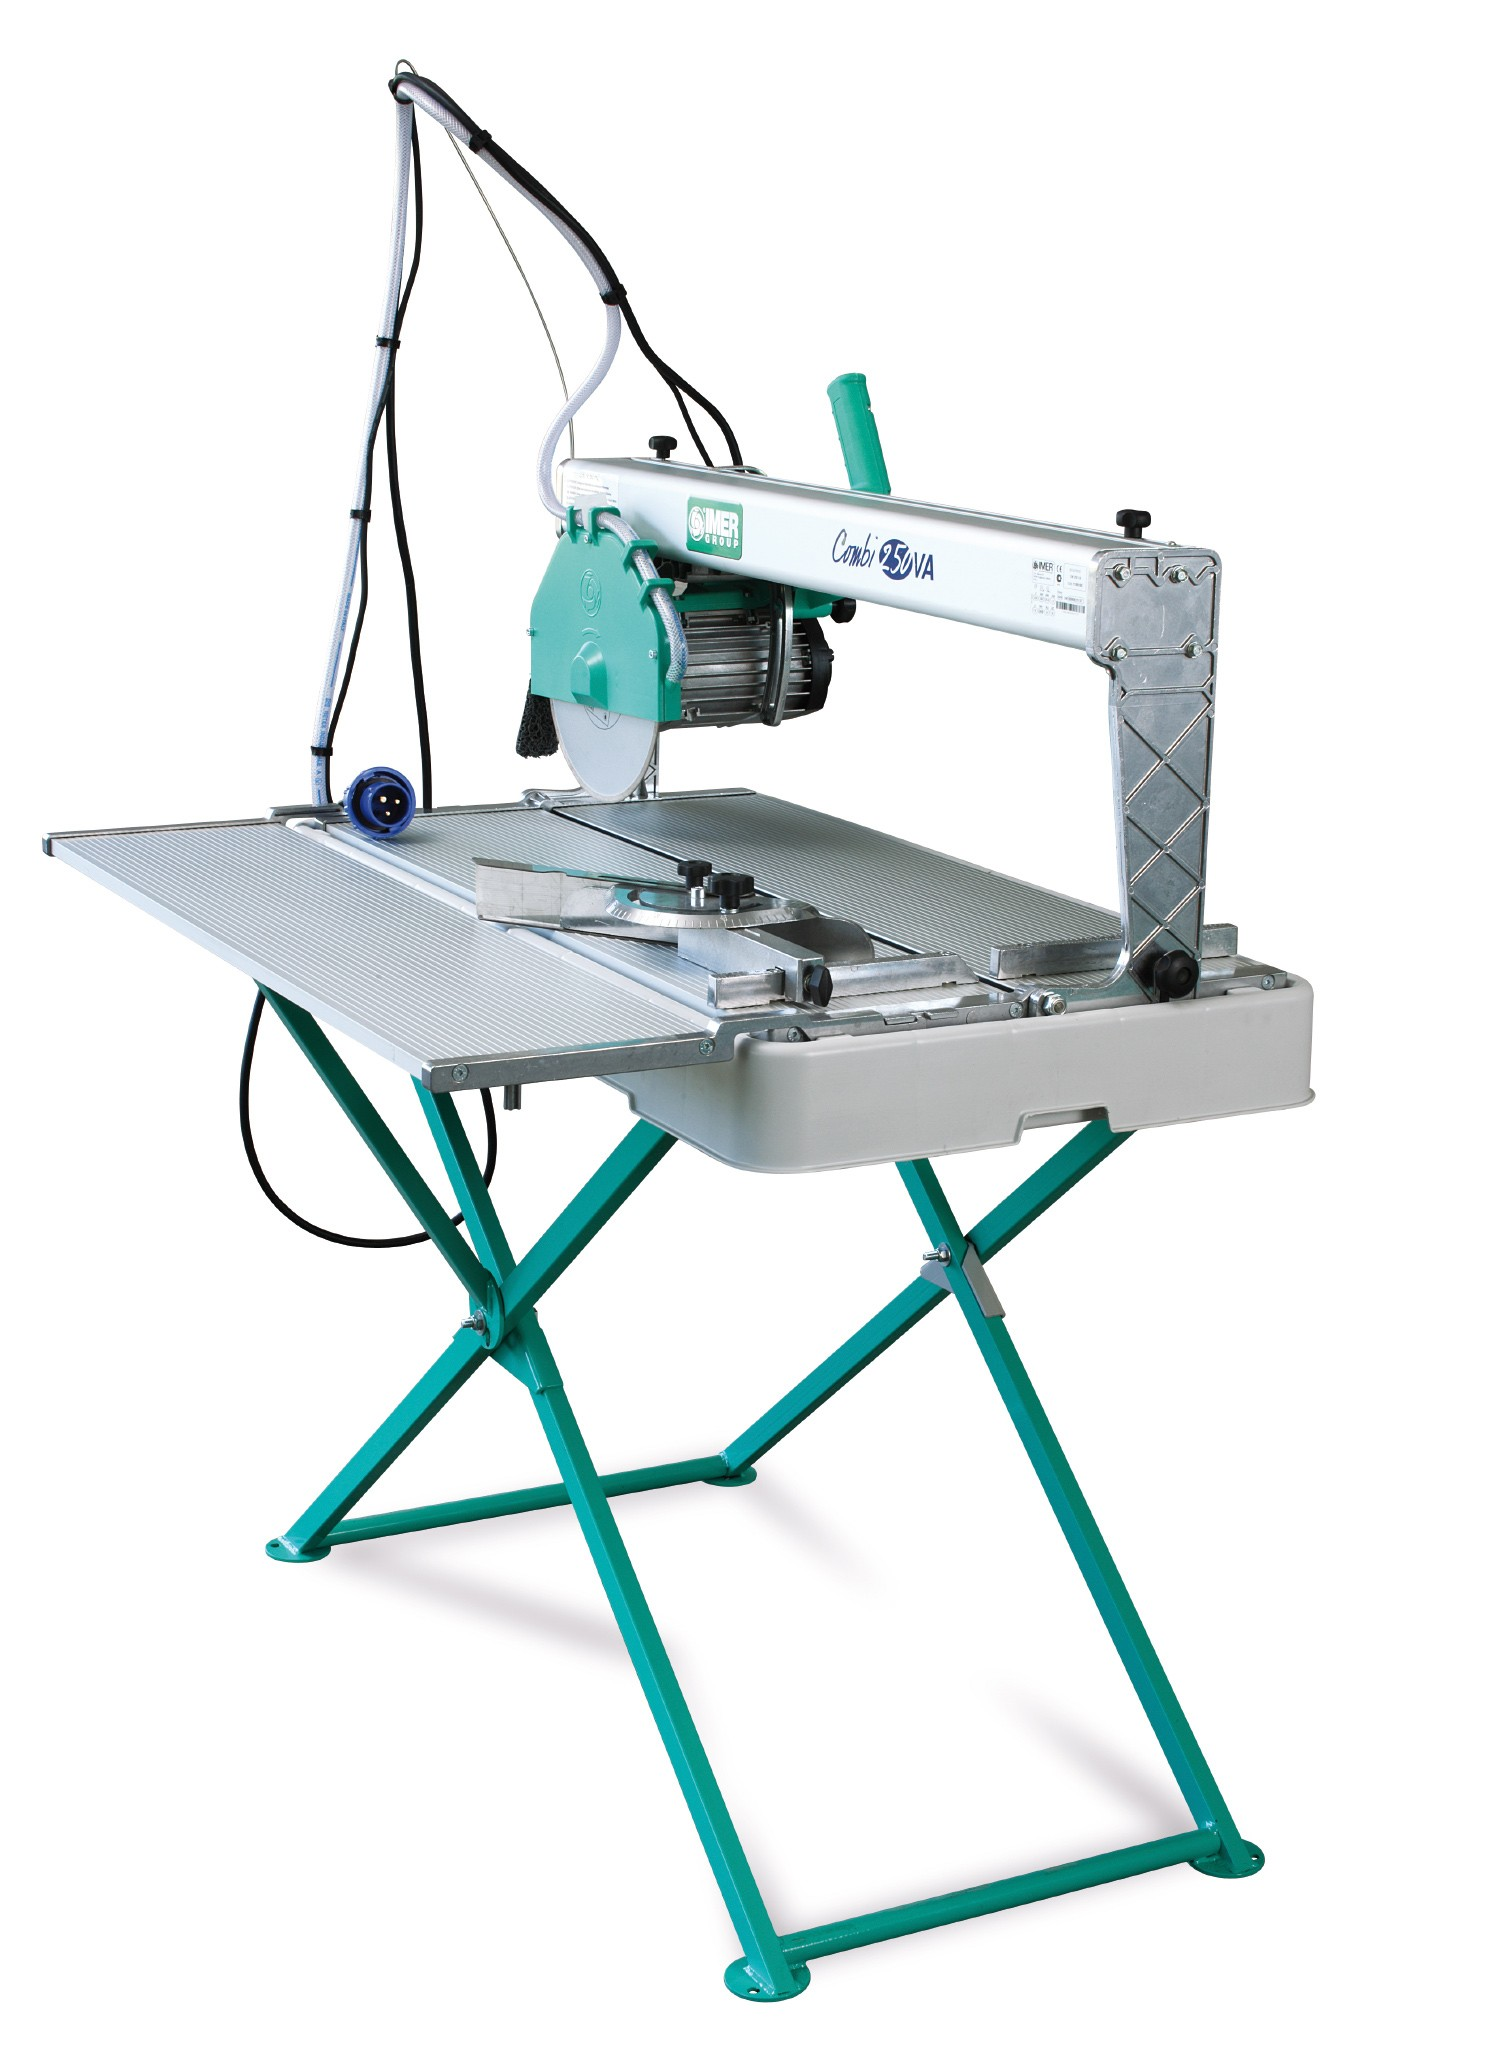 IMER Combi 250VA 10″ Tile Saw